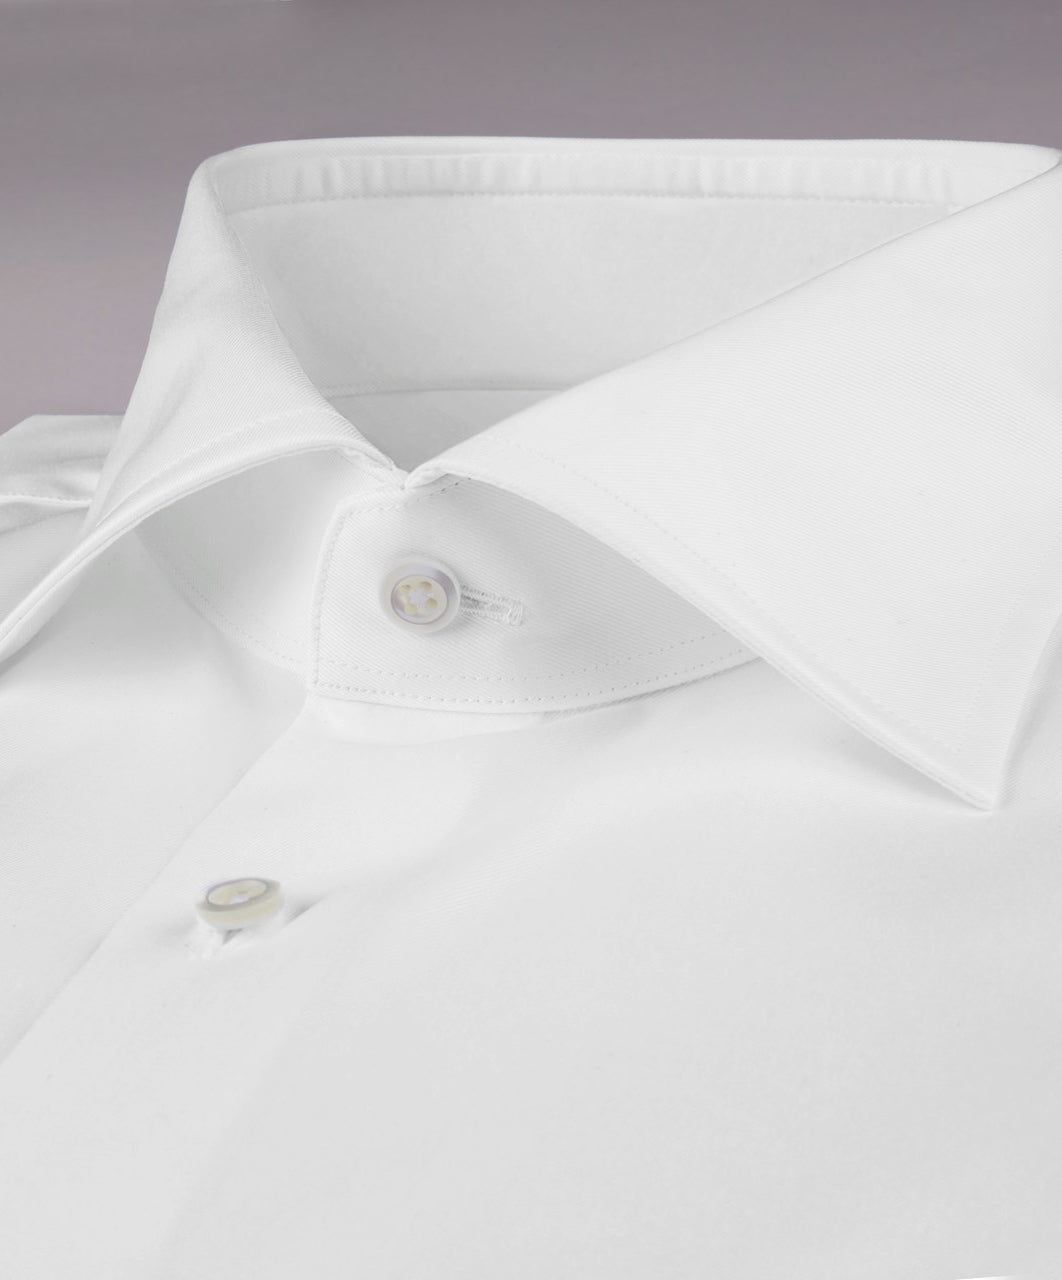 White French Cuff Slimline Dress Shirt